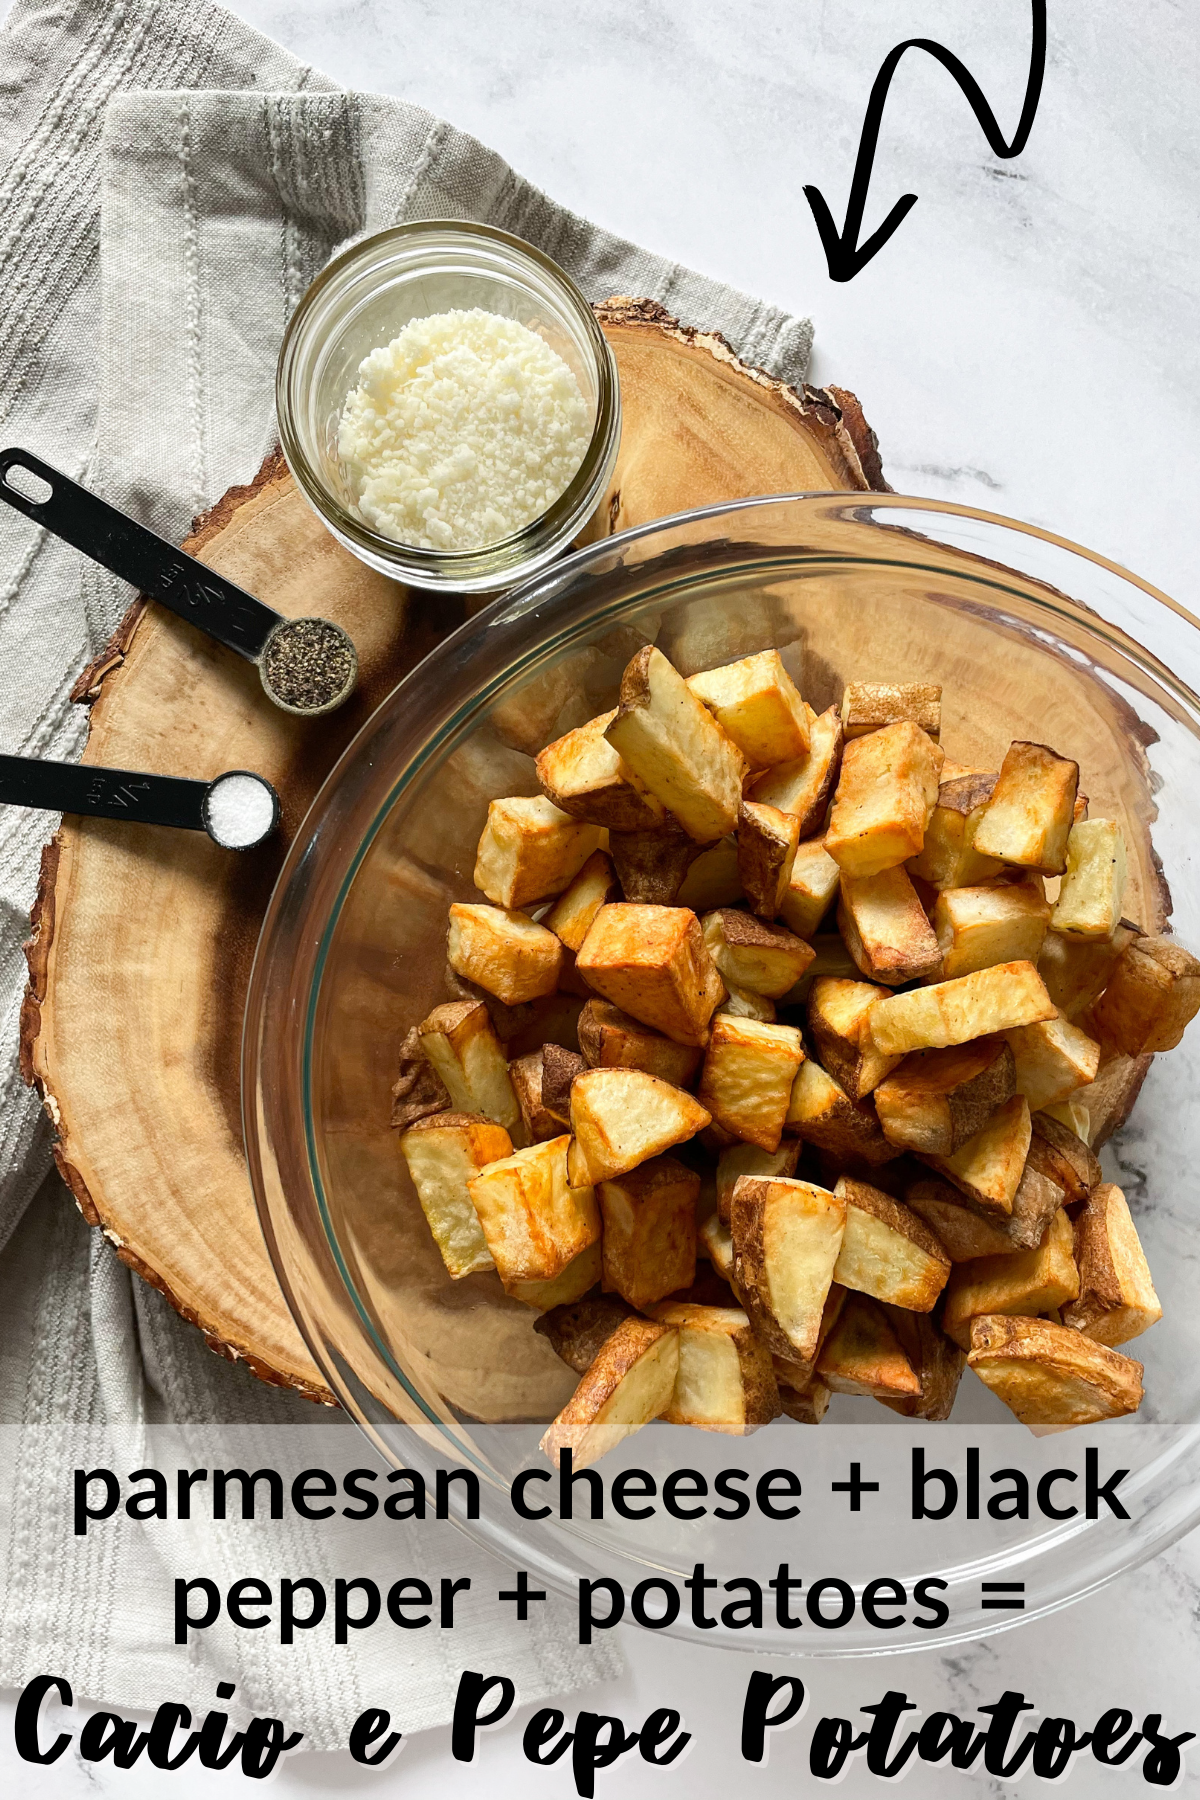 cooked potatoes in a bowl with parmesan cheese, black pepper and salt with text overlay